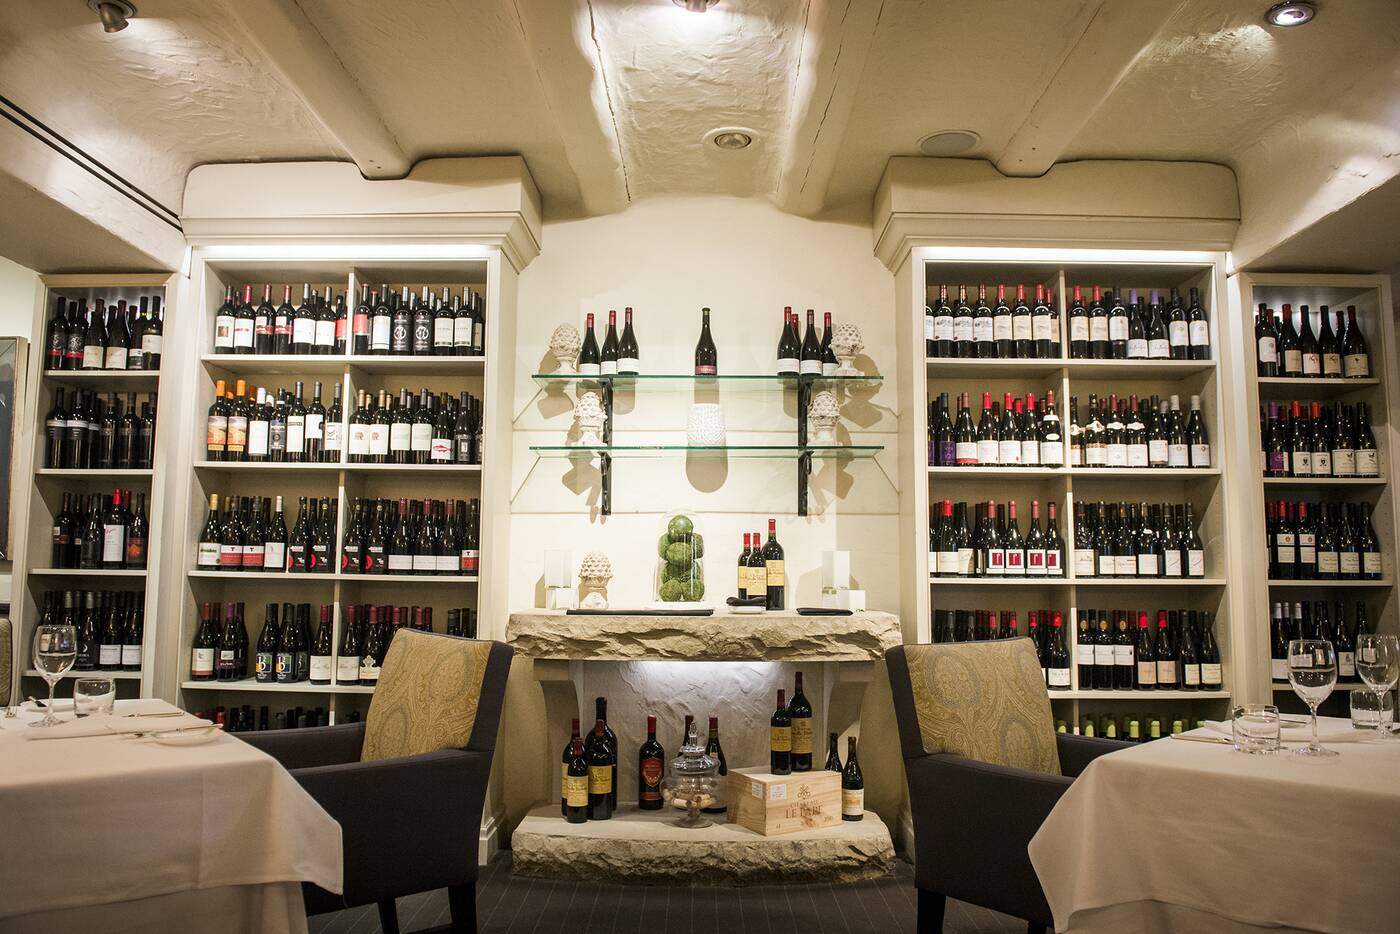 Auberge du pommier blogto toronto for Restaurants with private rooms near me